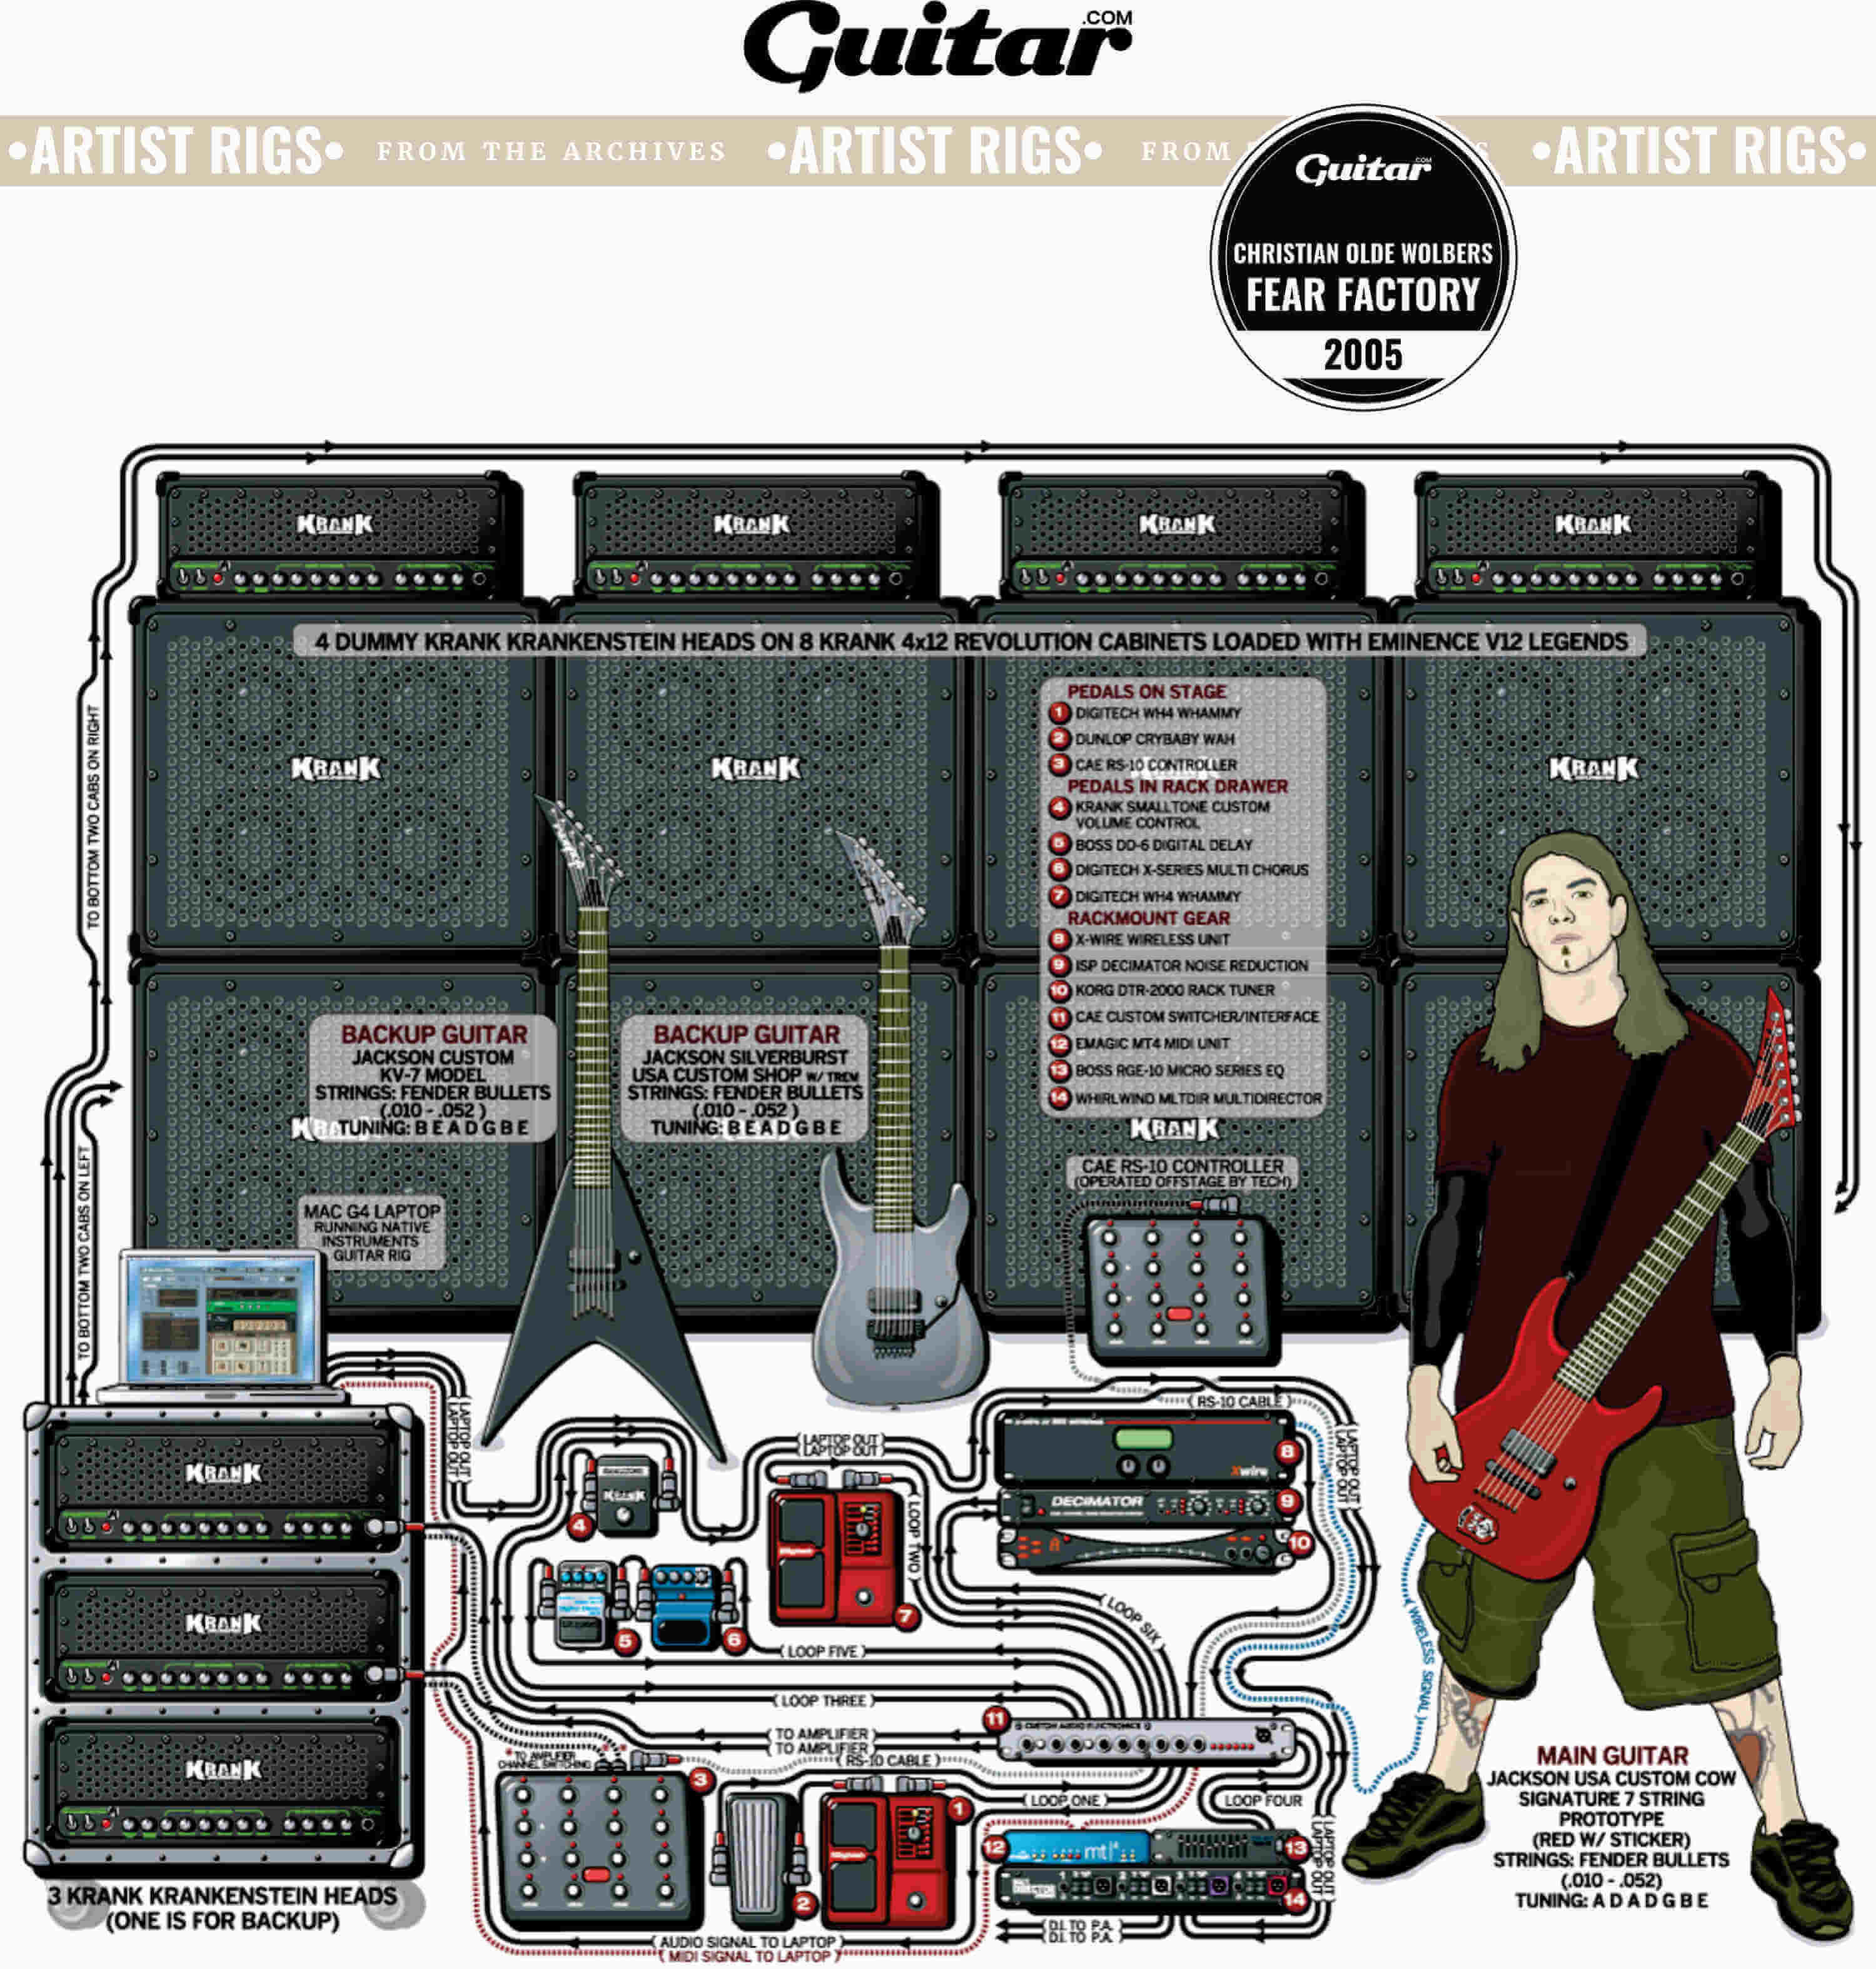 Rig Diagram: Christian Olde Wolbers, Fear Factory (2005)